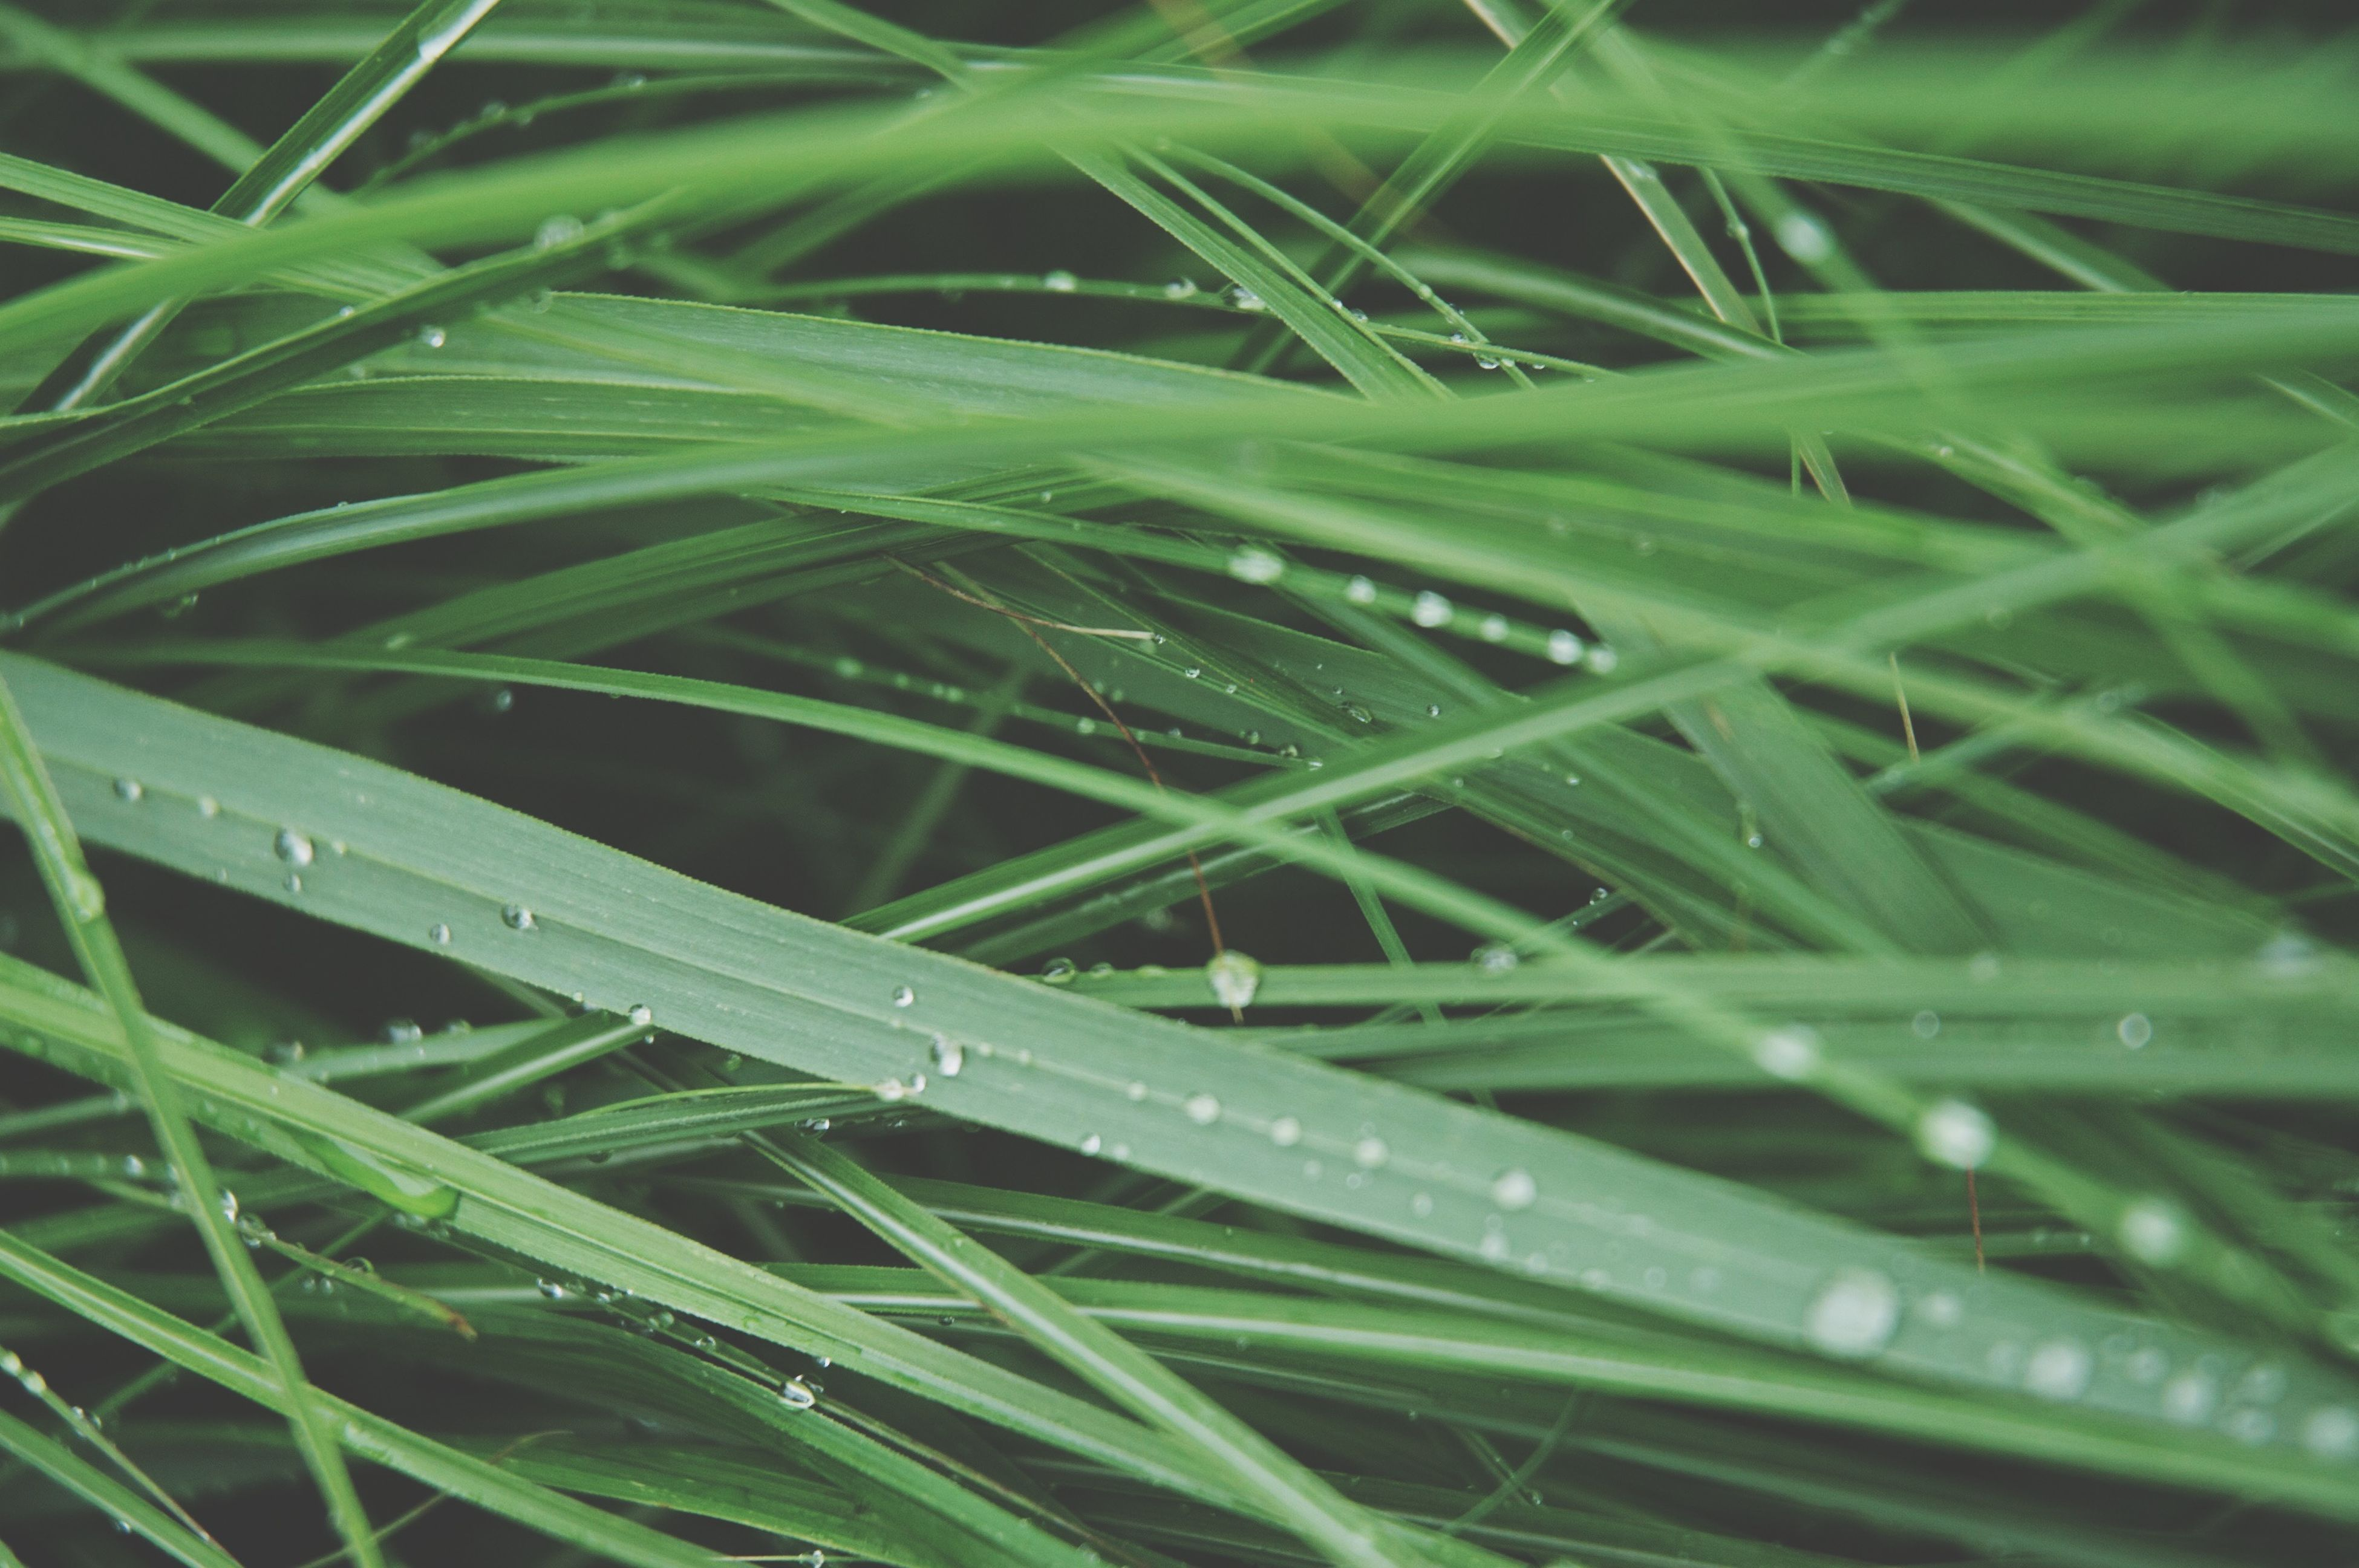 drop, green color, wet, grass, water, growth, dew, blade of grass, nature, close-up, beauty in nature, freshness, backgrounds, full frame, rain, raindrop, plant, leaf, field, outdoors